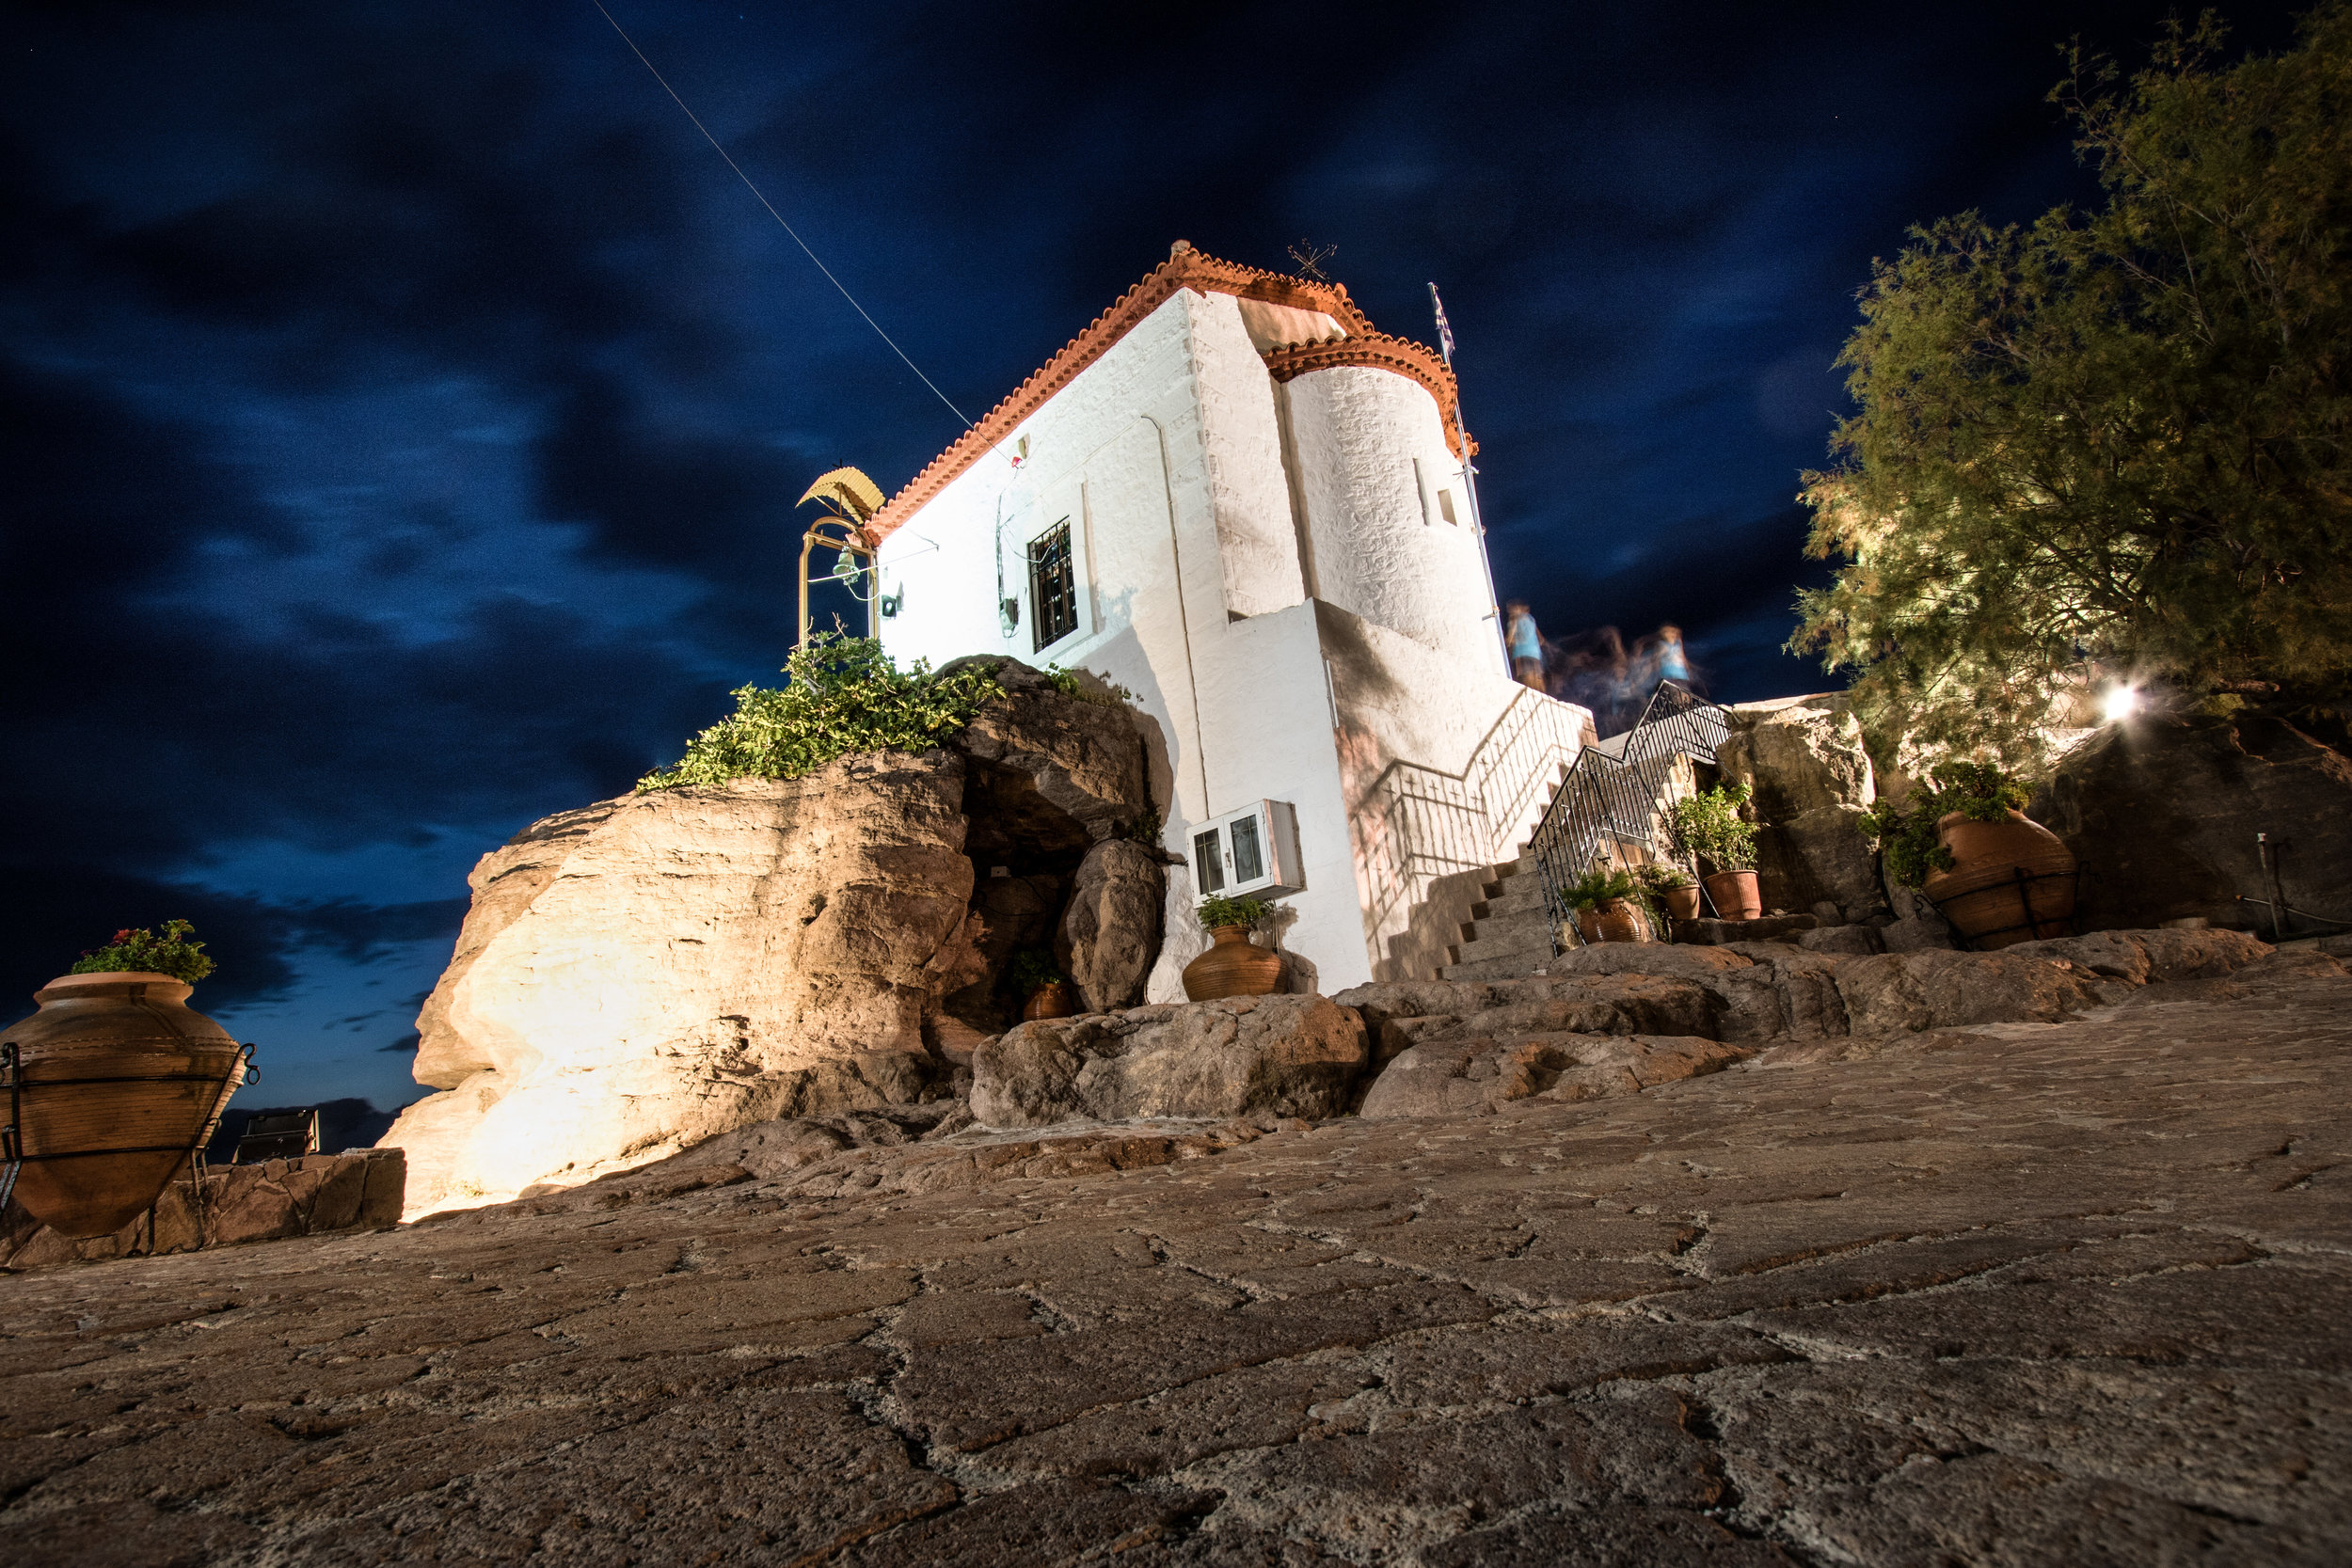 The church that forms the iconic centre of the Skala harbour. Canon 7D Mk ii 10-22mm at f/8 22sec ISO 200